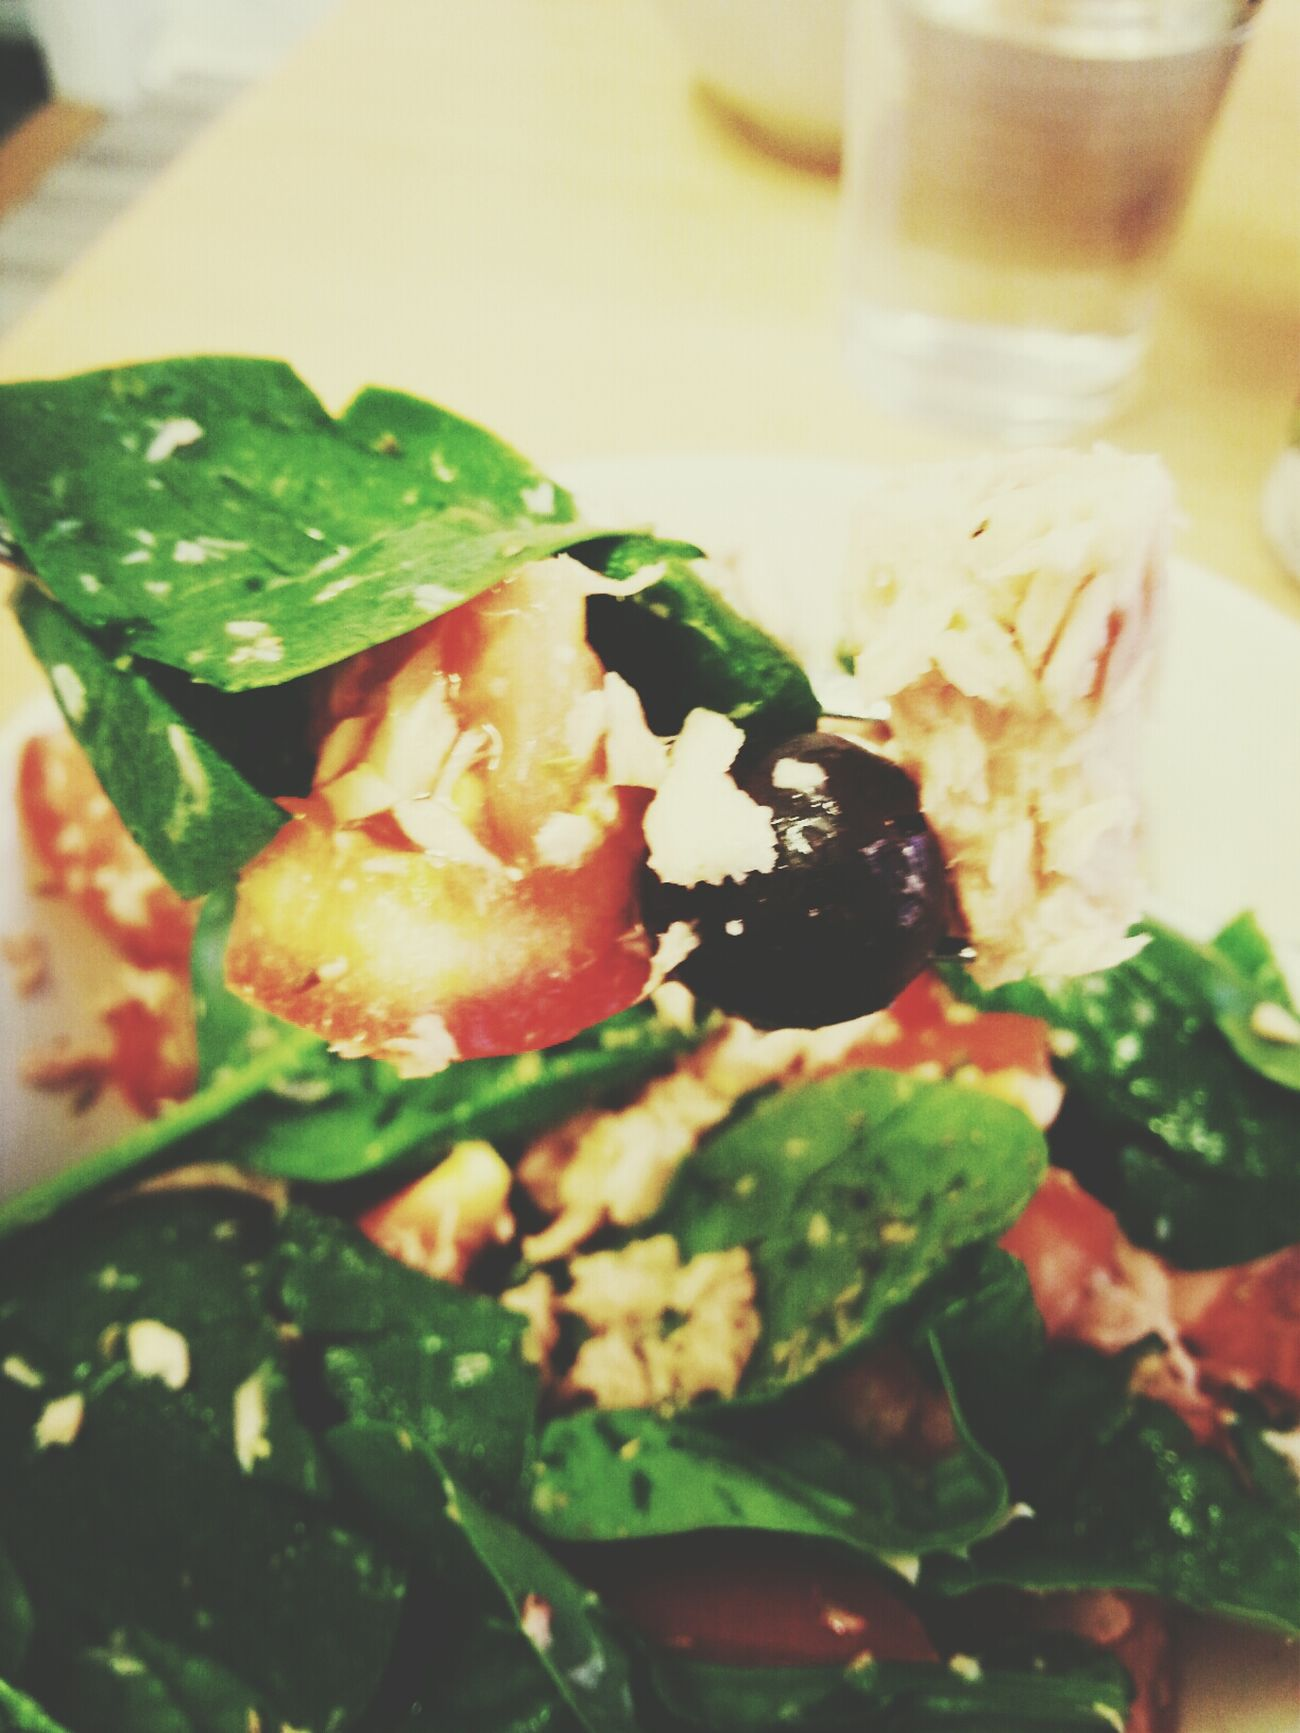 eating my good lunch now!!! hectic day making lots of pictures! Eating Healthy Eating Lunch Working Place SS Foto